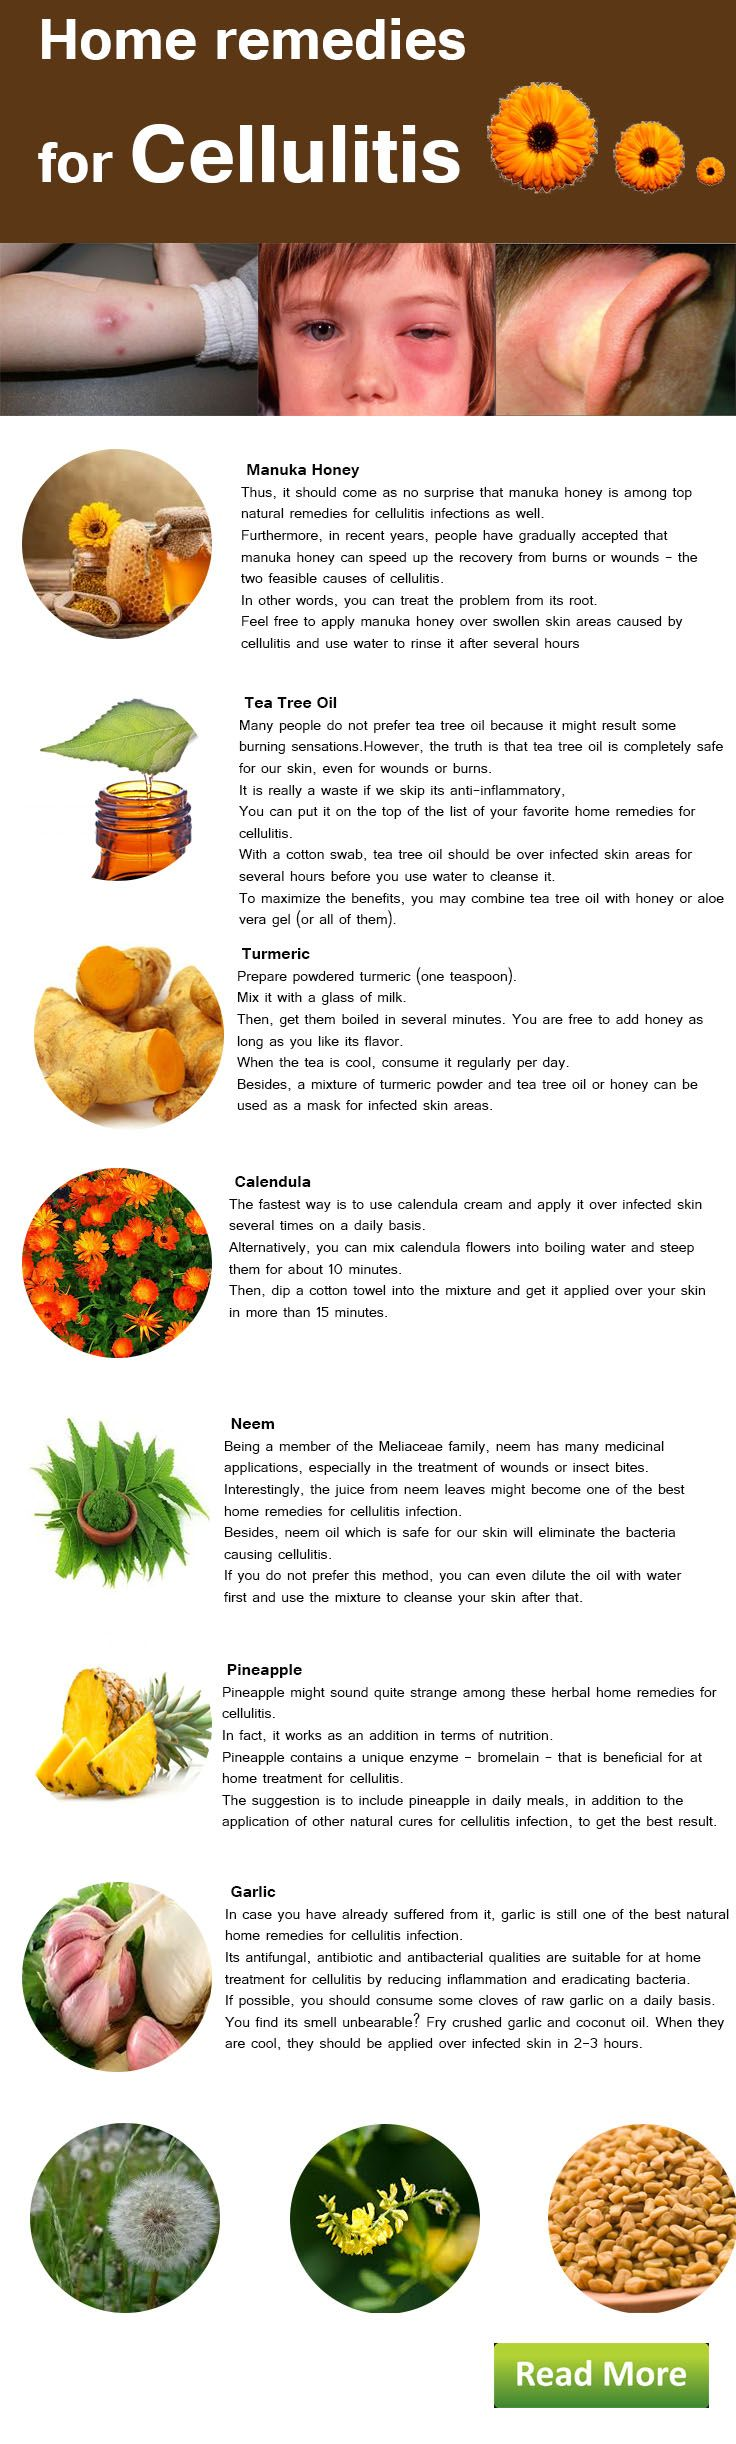 Home remedies for cellulitis: how to get rid of cellulitis